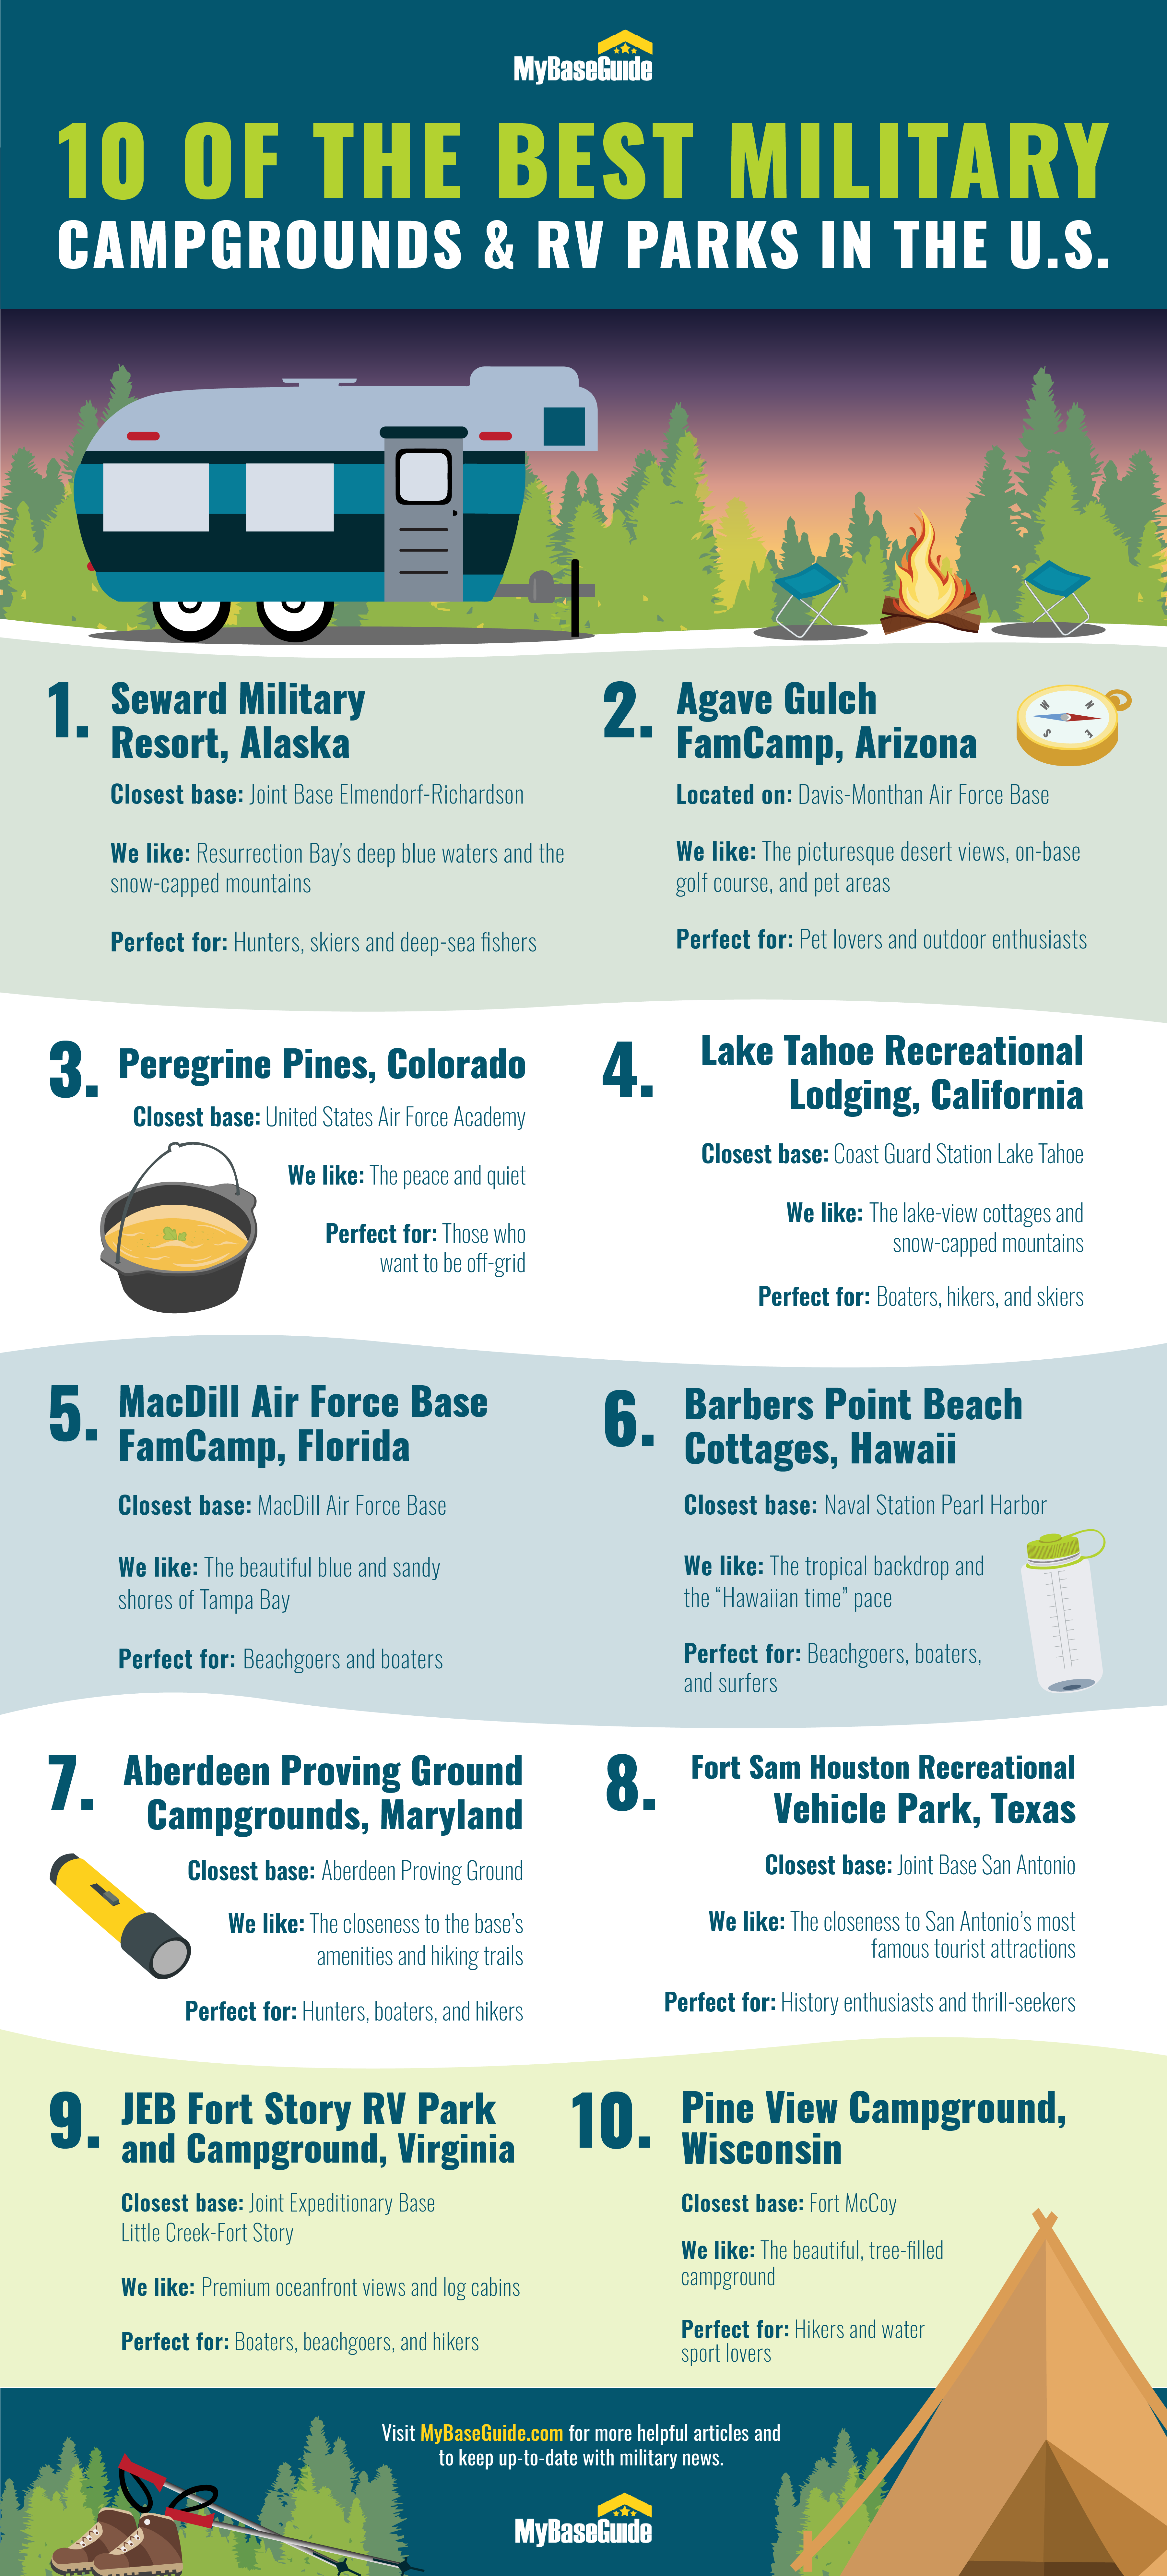 10 of the Best Military Campgrounds & RV Parks in the United States Infographic